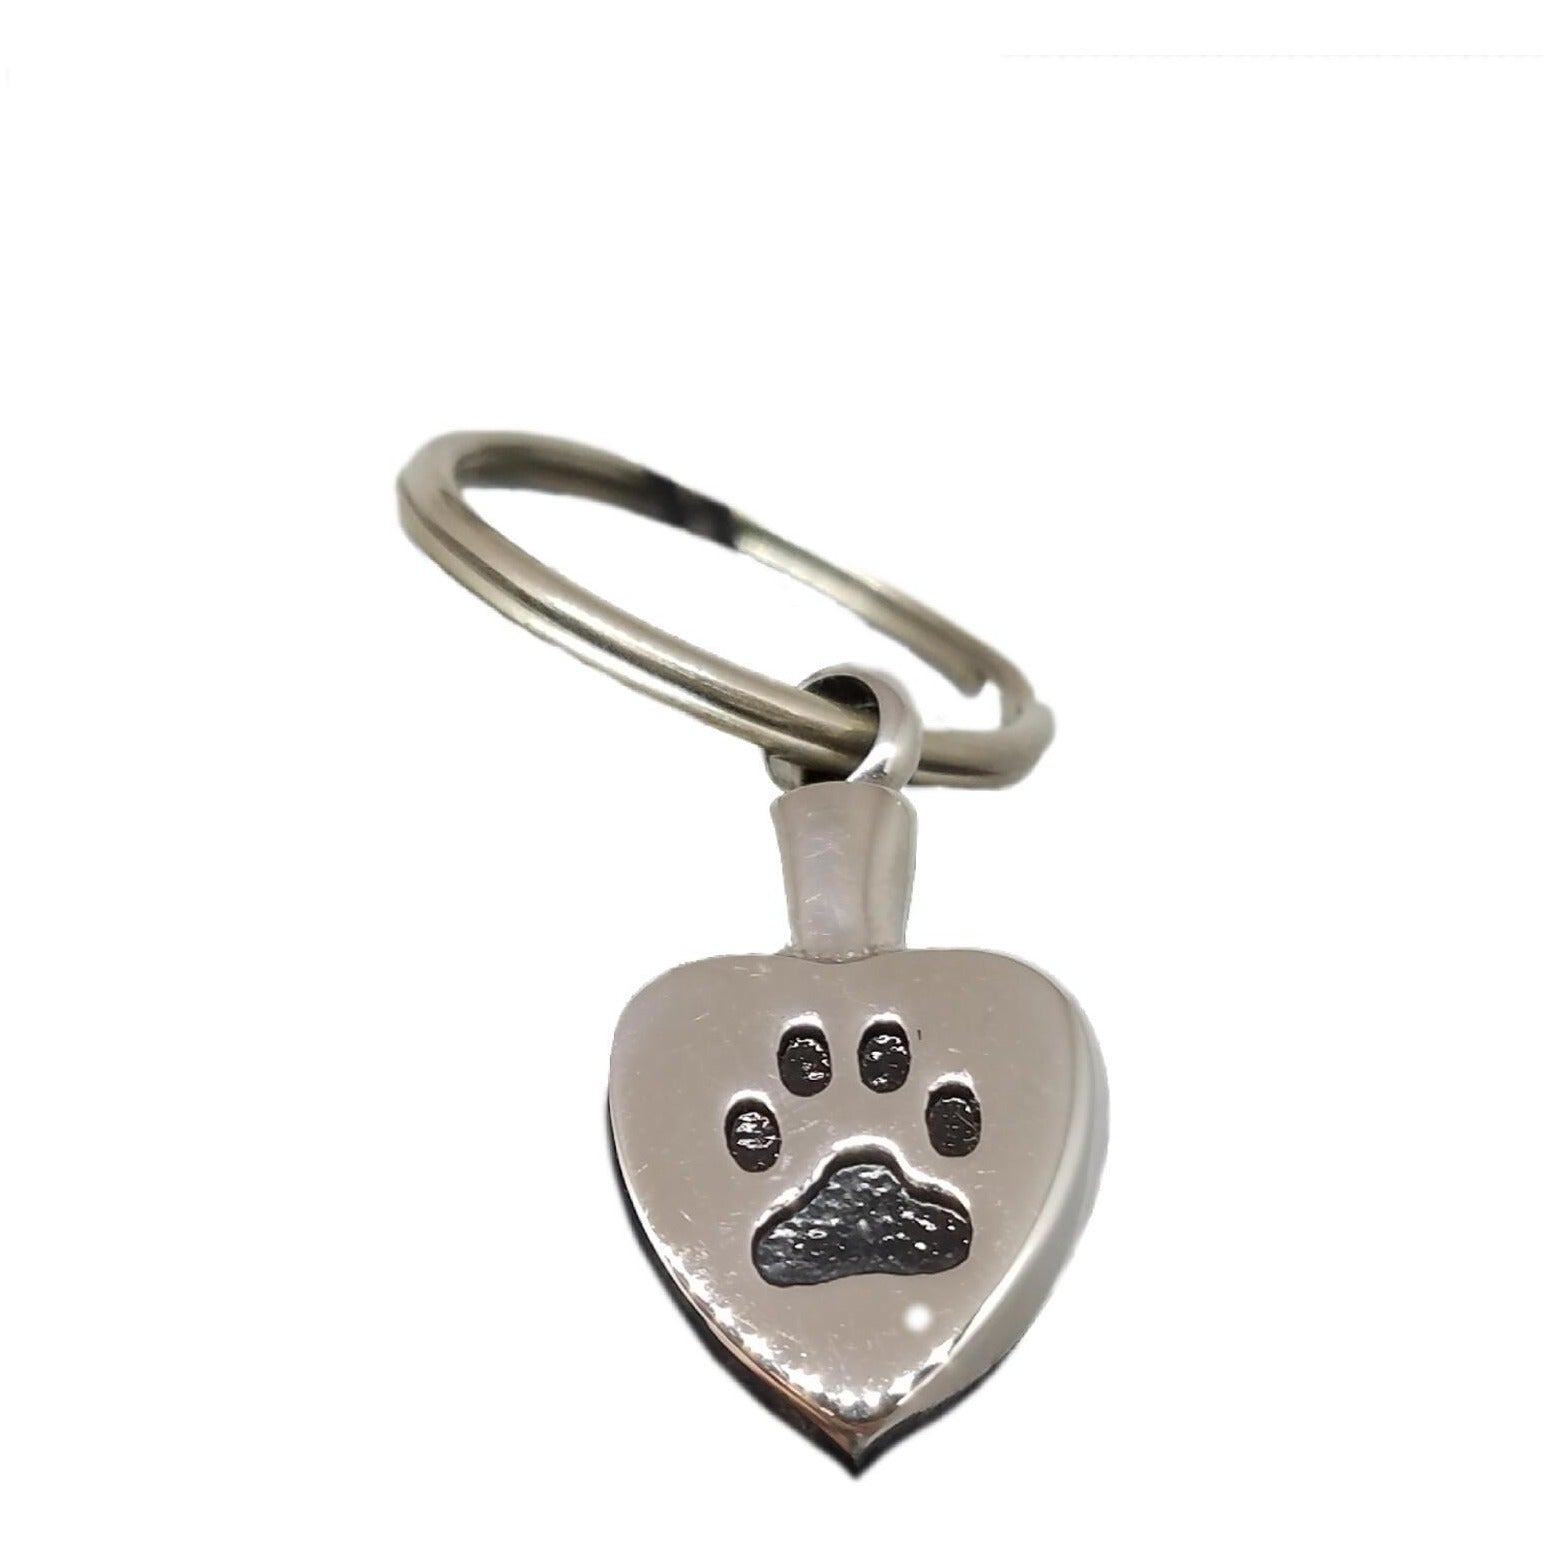 Key Chain Urn with a Pawprint